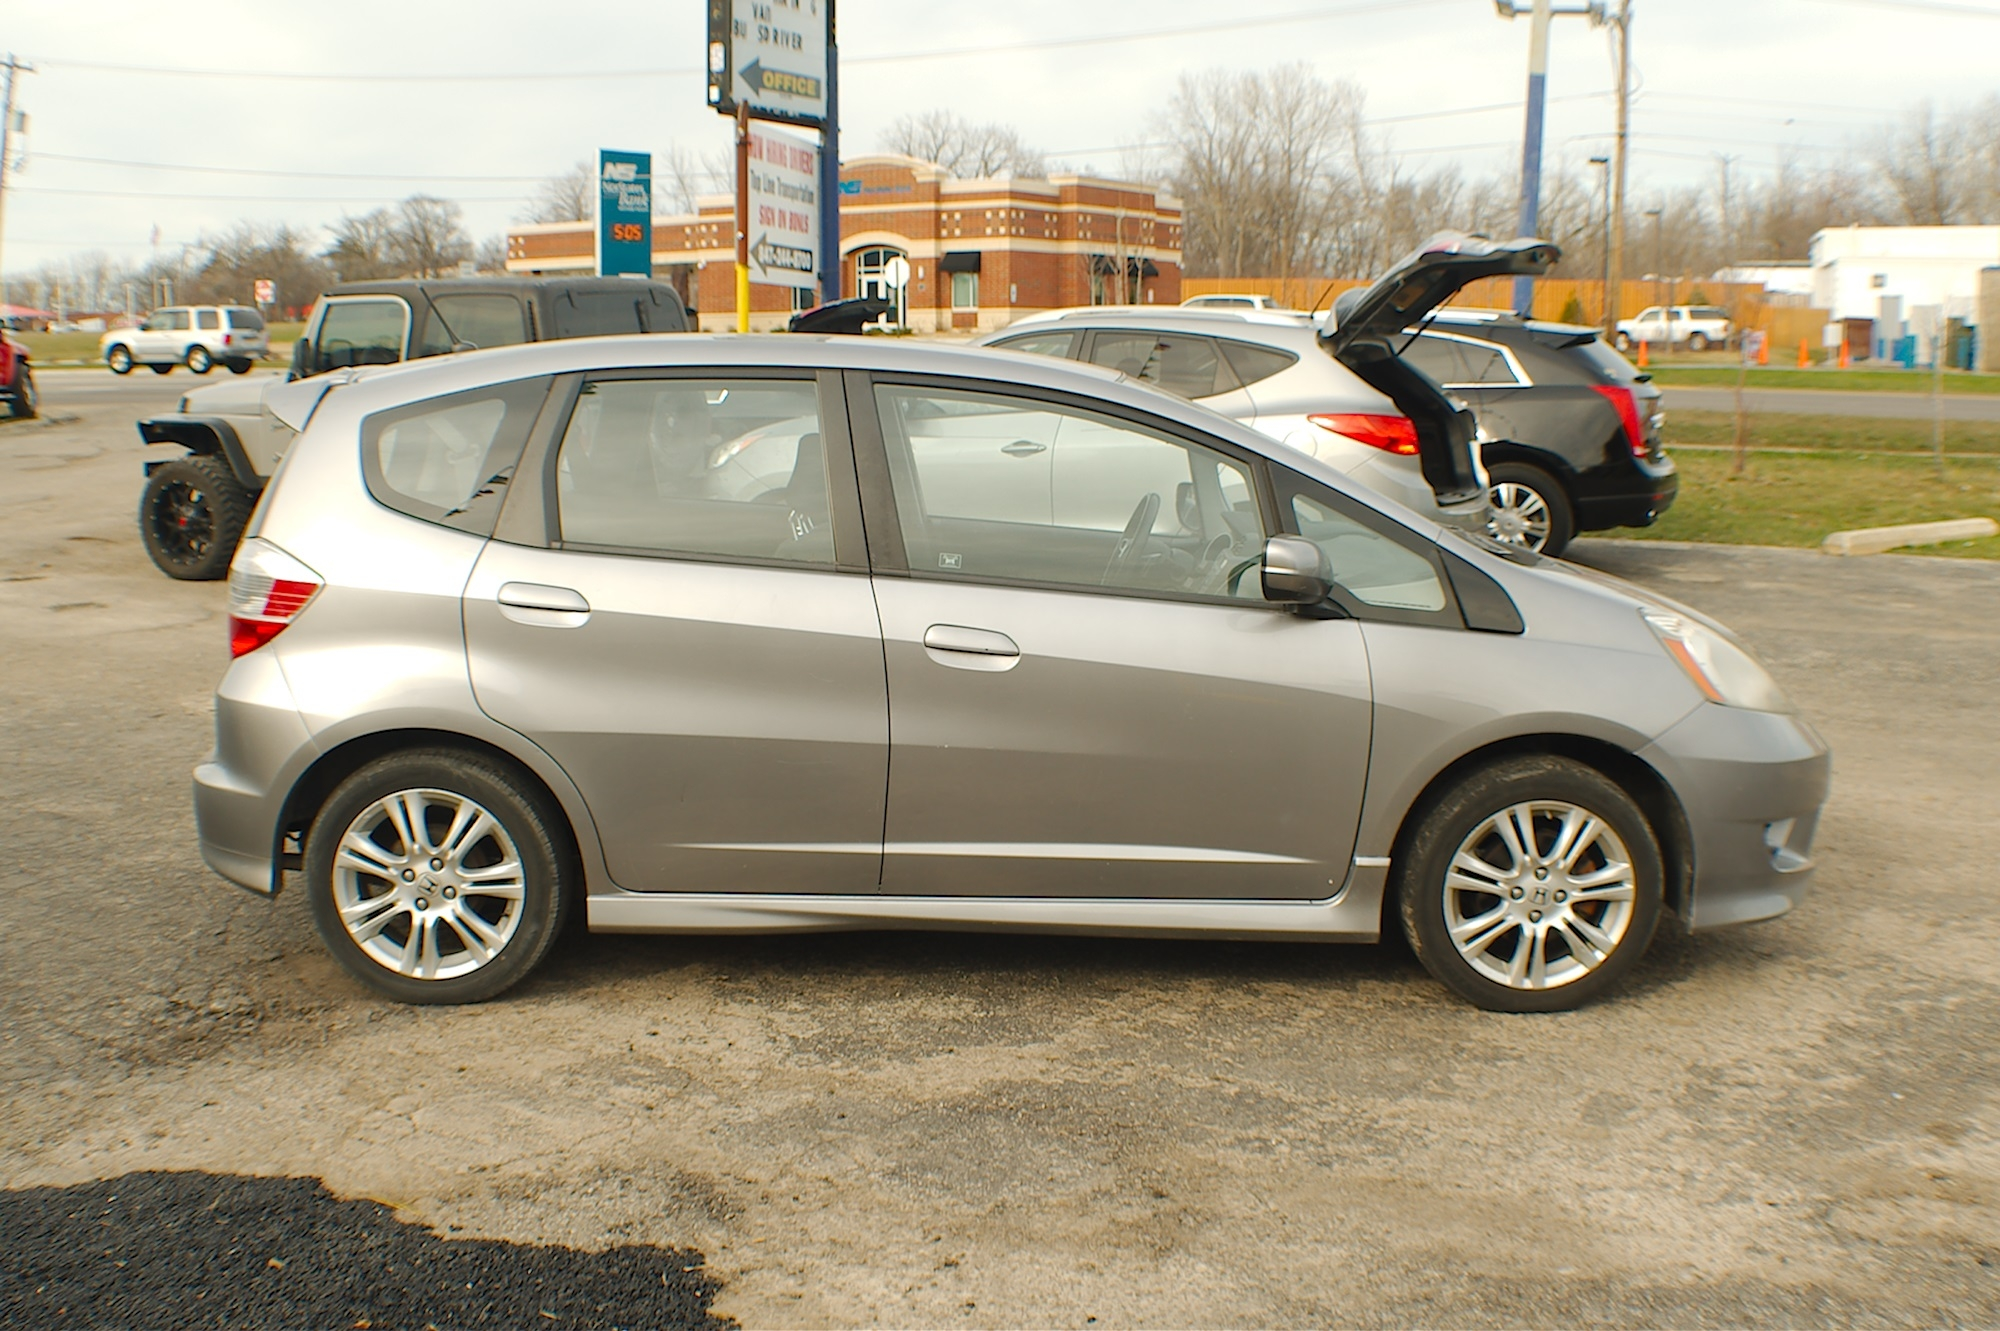 2009 Honda Fit Gray Hatchback Used Car Sale Buffalo Grove Deerfield Fox Lake Antioch